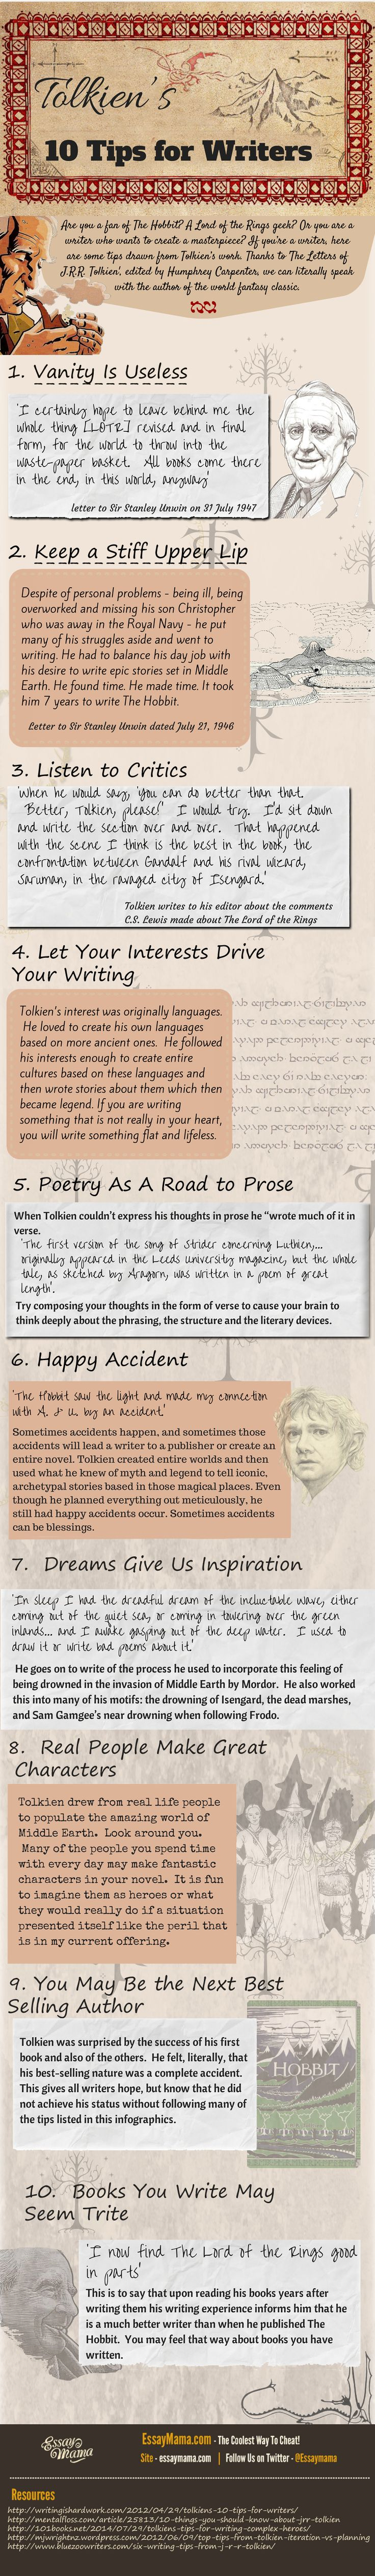 10 #Tips for #Writers by #Tolken #Infographic #StoneSquared #STONE²